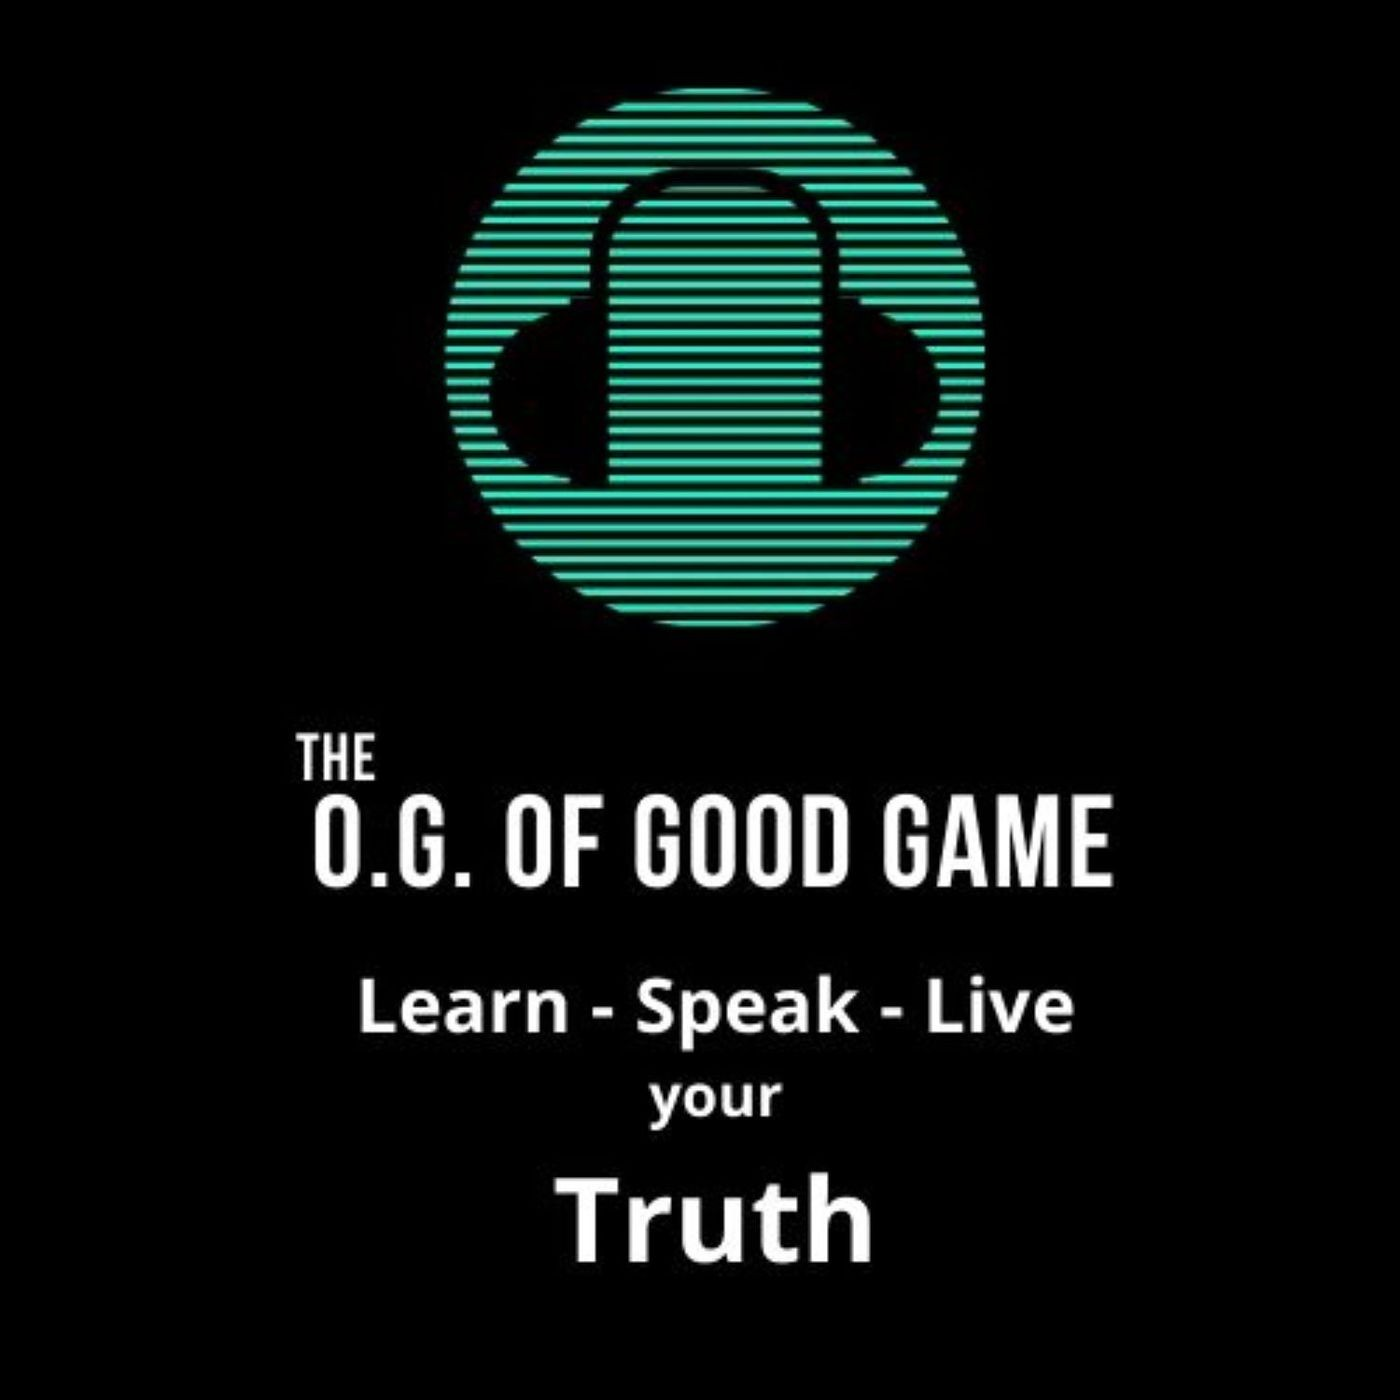 The O.G. of Good Game LIVE